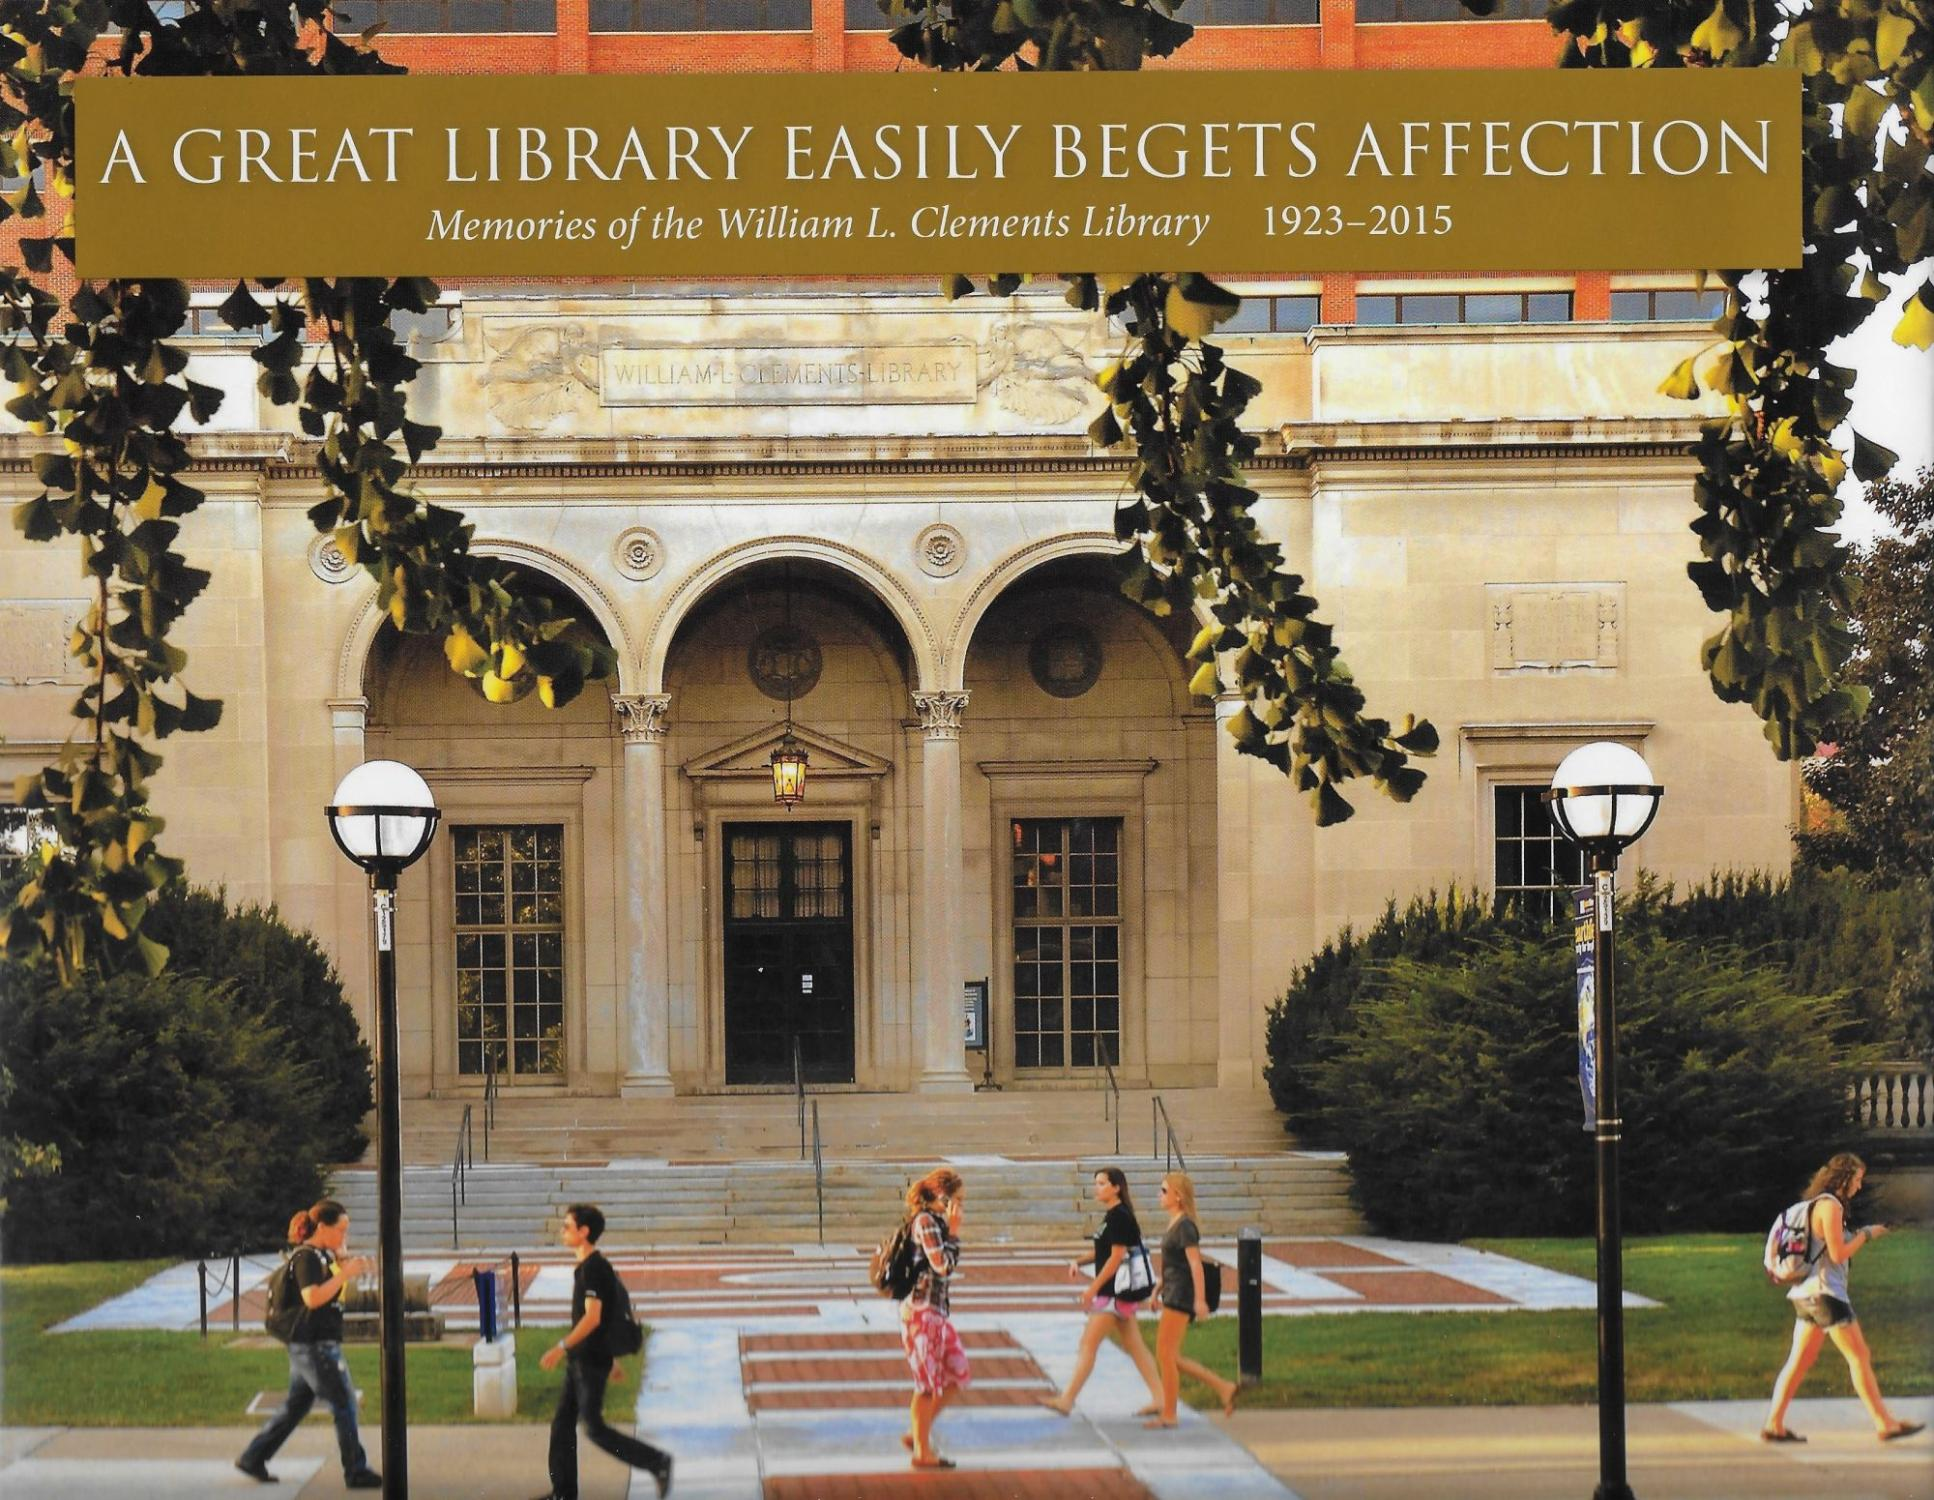 Great Library Eeasily Begets Affection: Memories of the William L Clements Library, 1923-2015